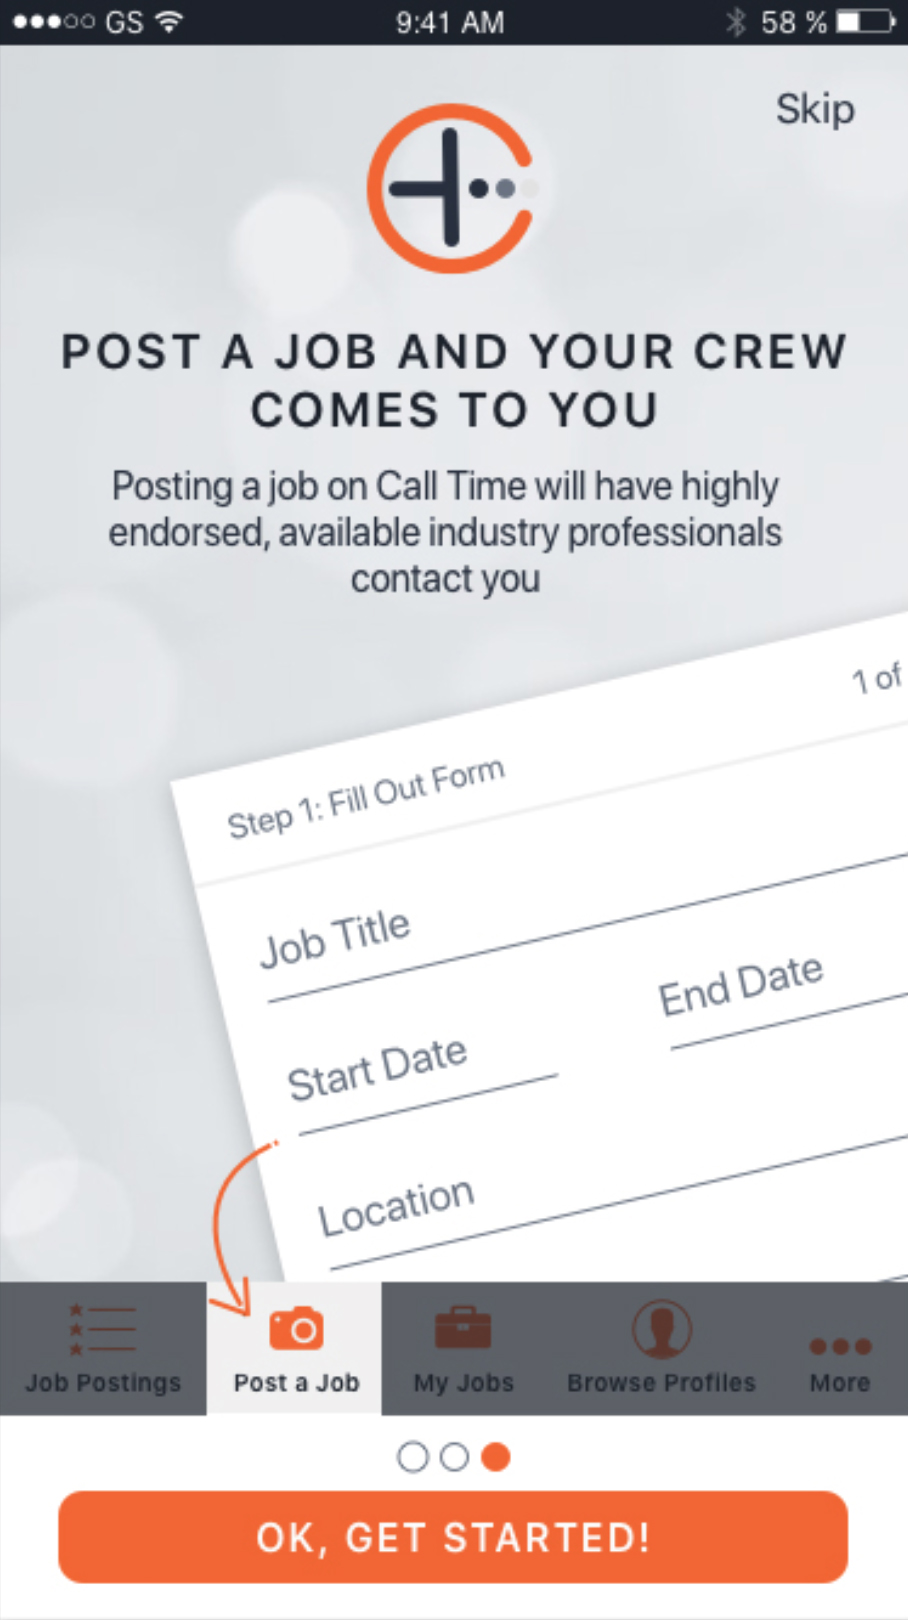 App Screenshot: Posting A Job